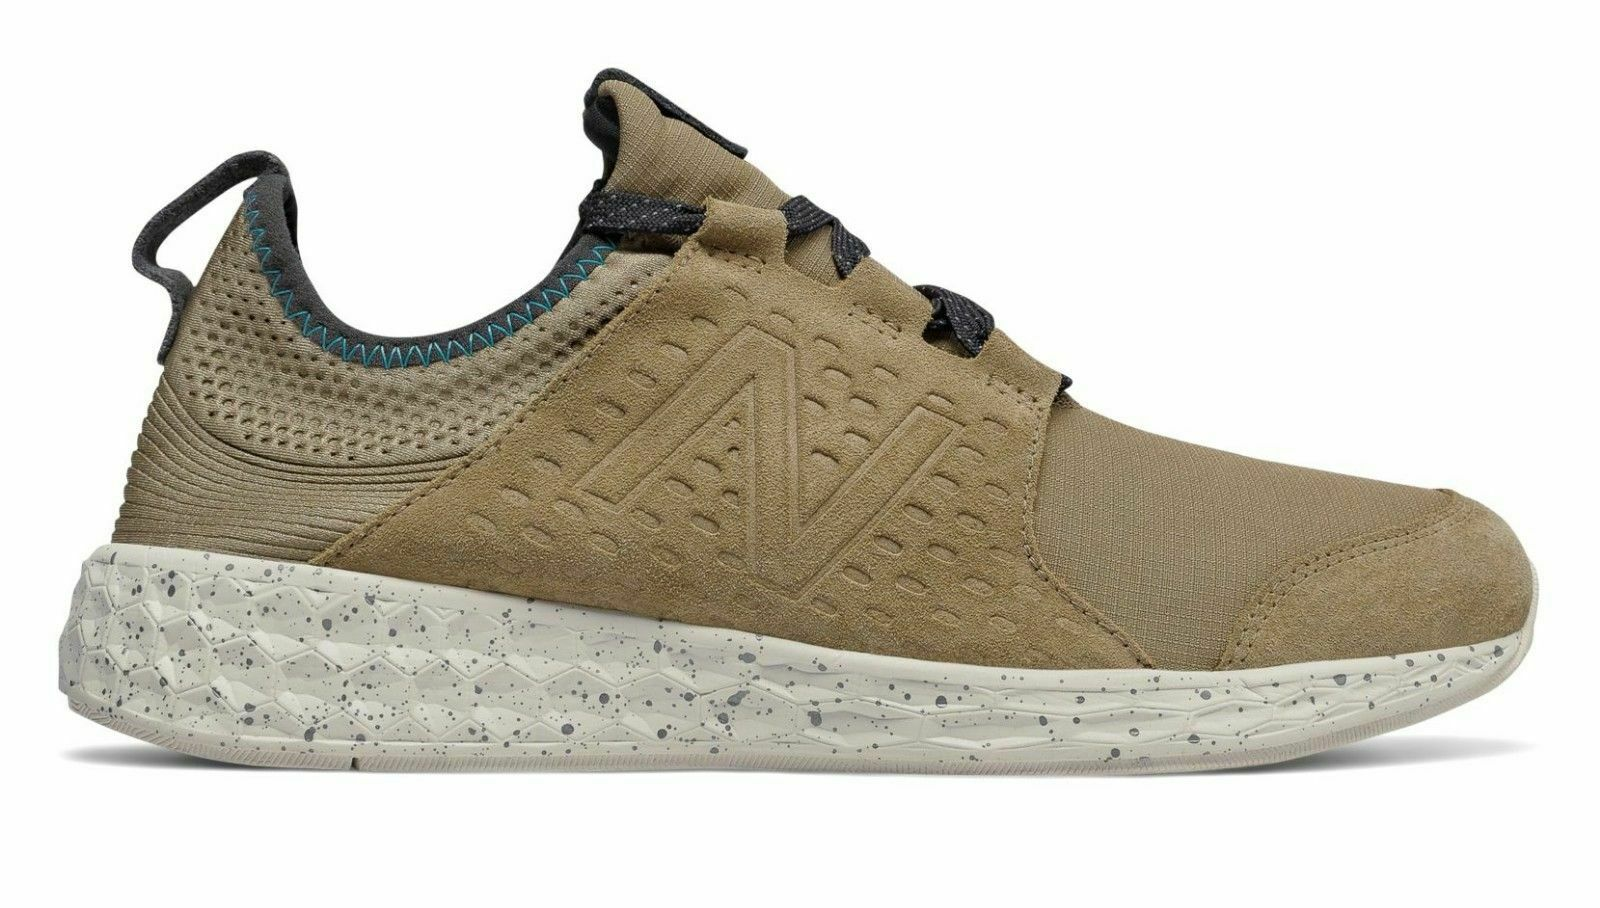 New Balance Mens Fresh Foam Cruz Predect Trainers Tan Brown US 8